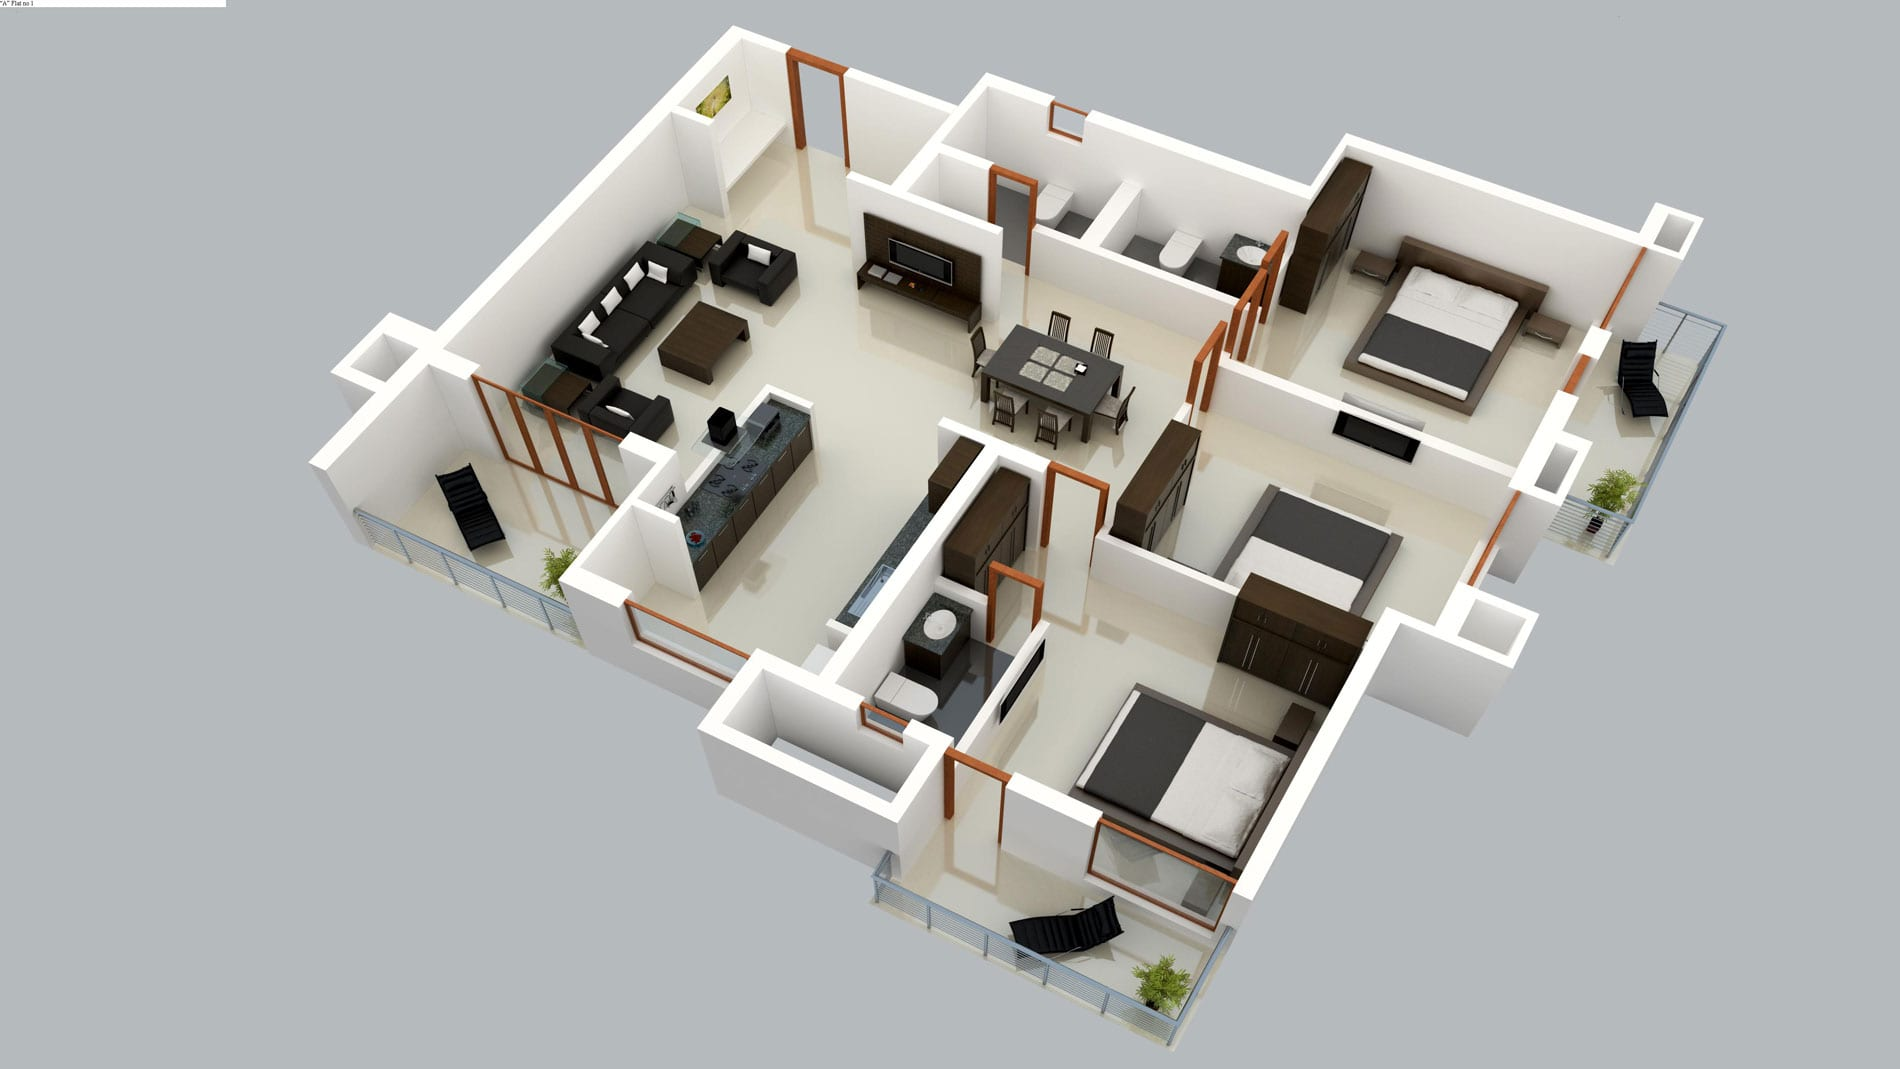 Multi storey house sample cad building map | powerpoint download.